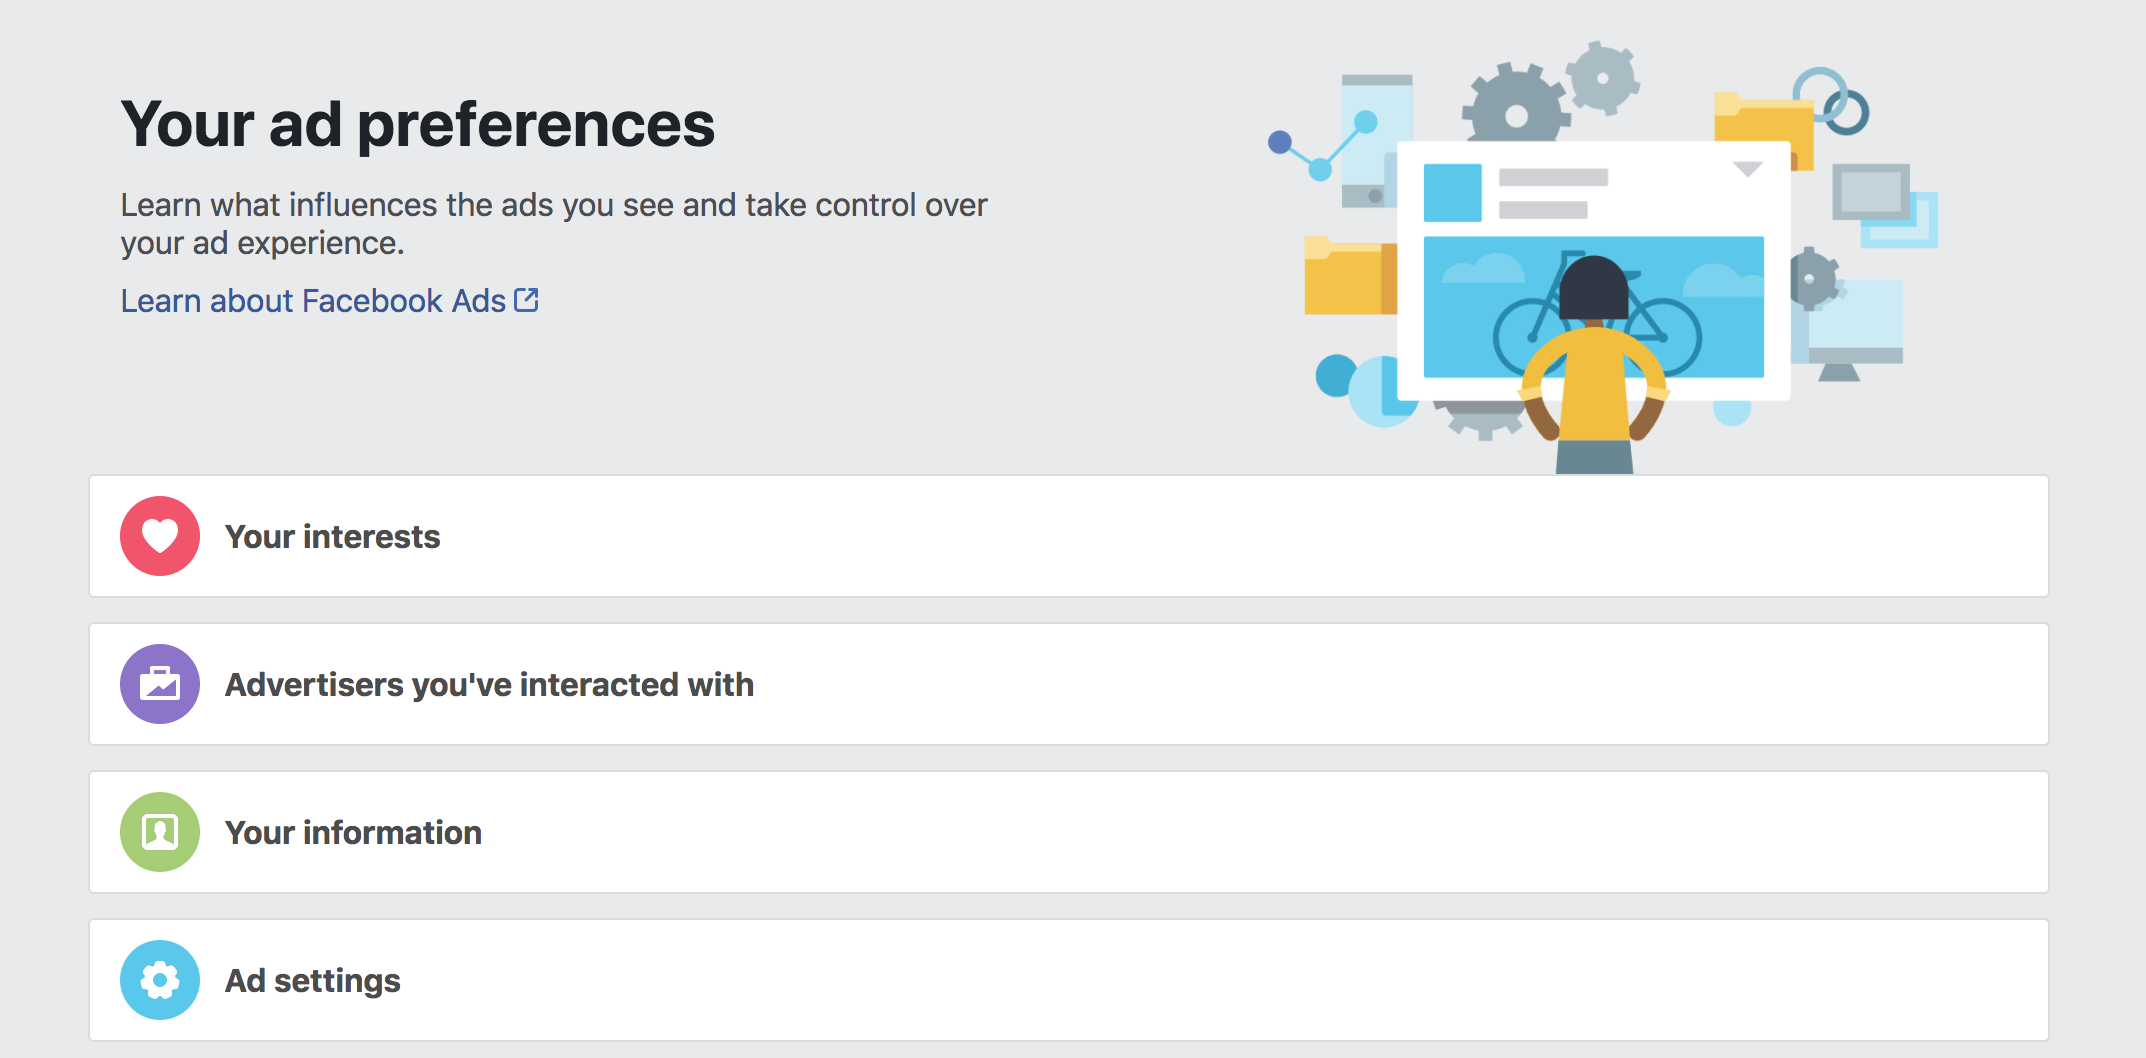 Facebook Ad Preferences protect privacy